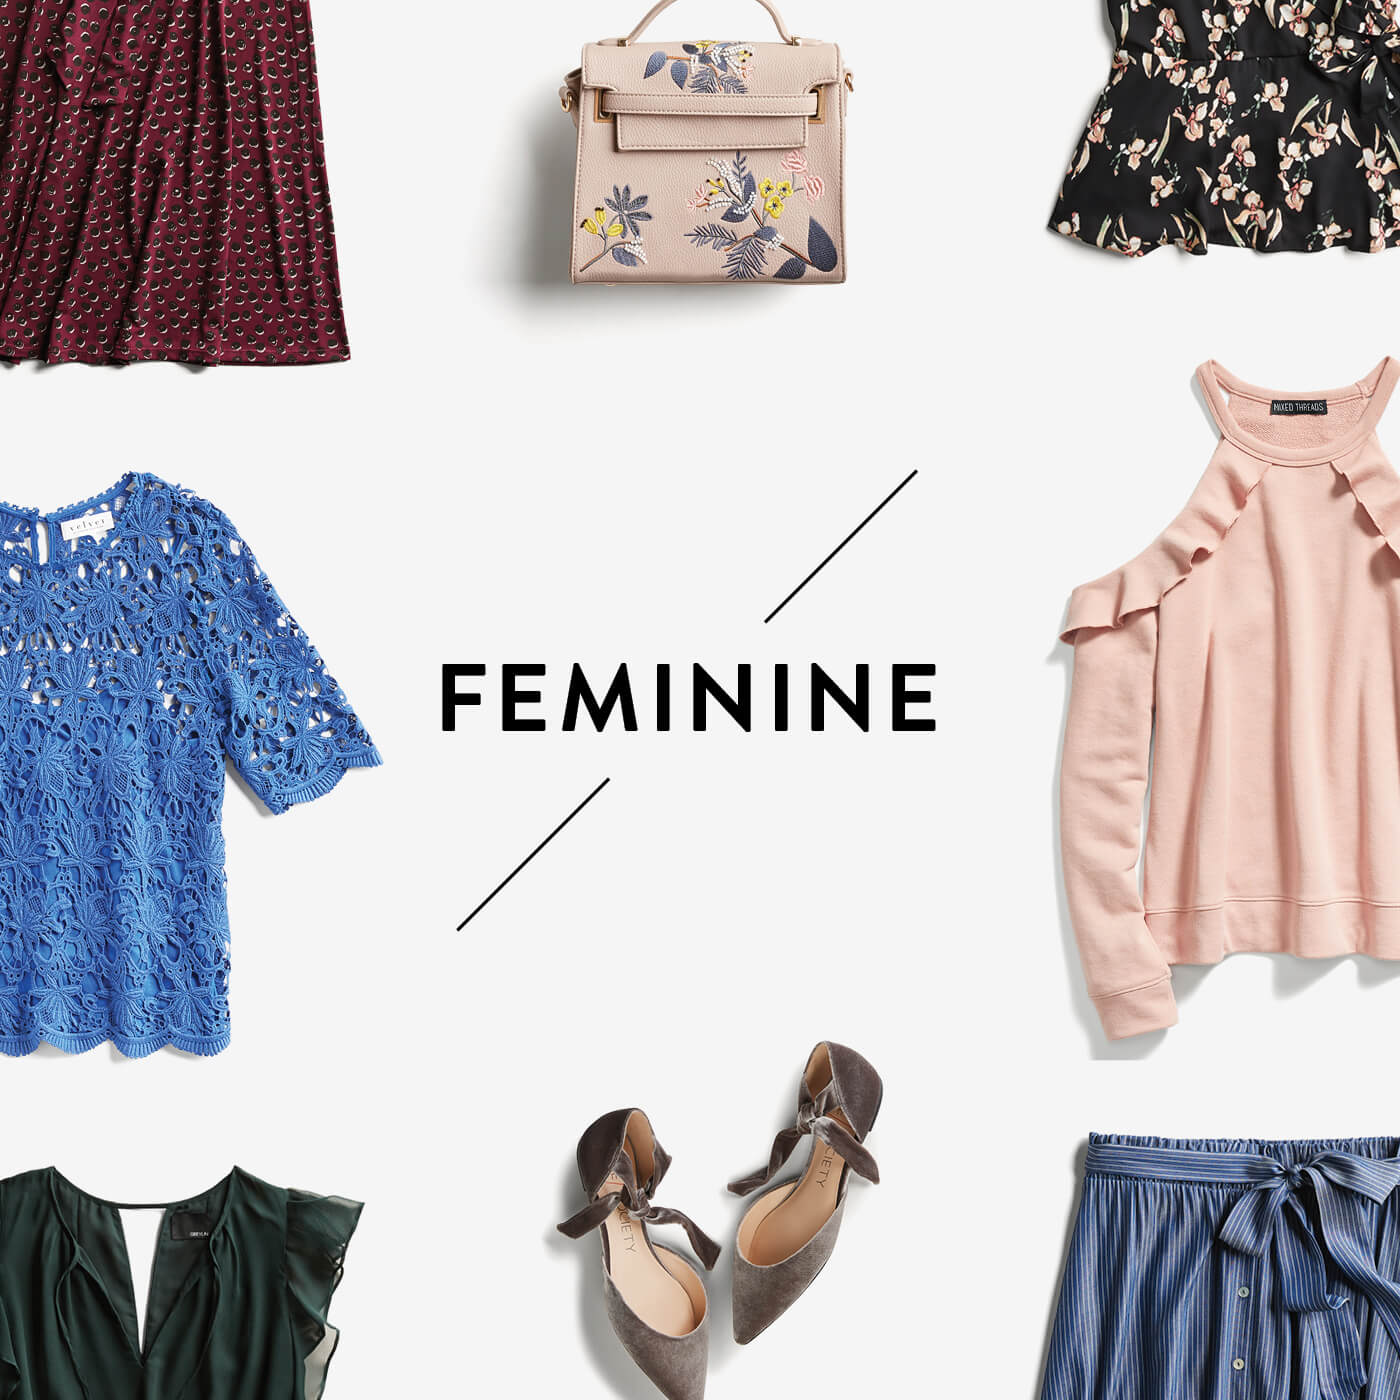 Personal Style Quiz Find Your Style Stitch Fix Style